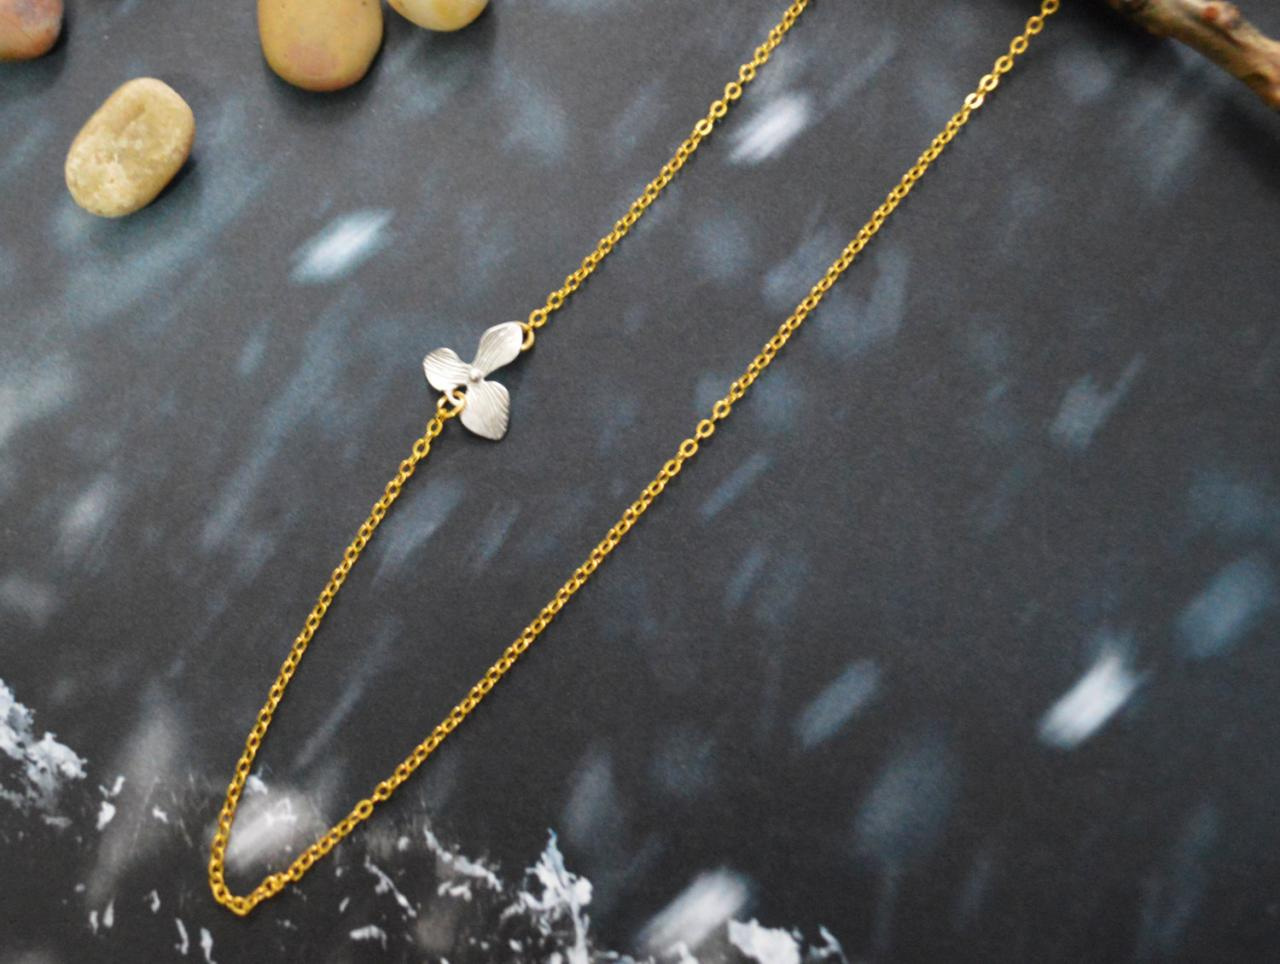 A-183 Sideways Necklace, Orchid, Flower necklace,Asymmetrical,Unbalanced,Simple necklace, Silver,Gold plated/Everyday jewelry /Special gift/